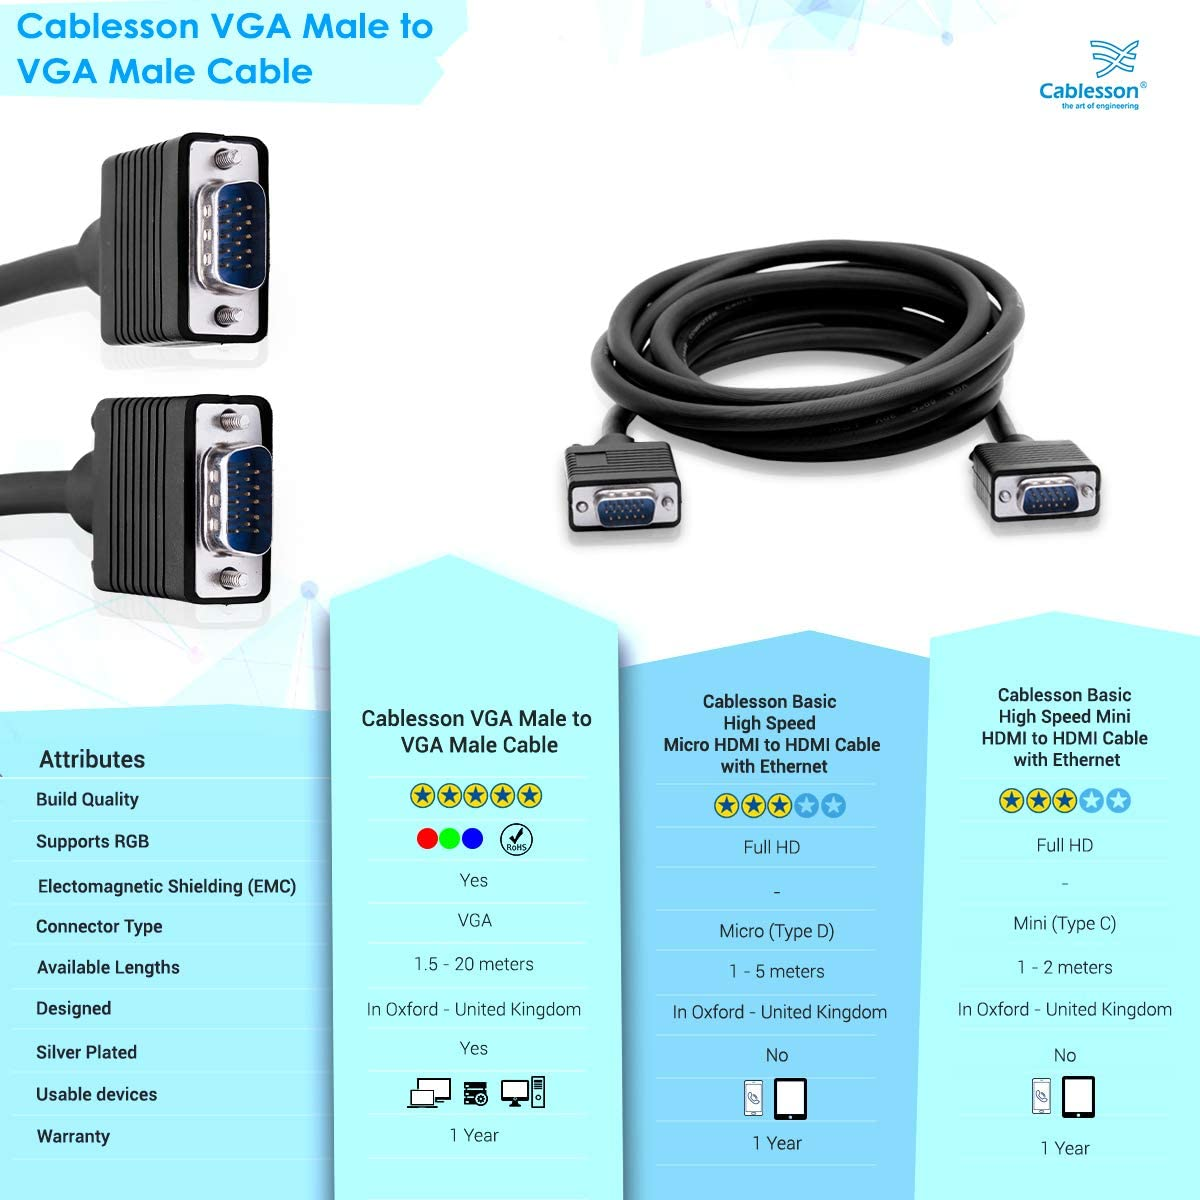 Black 10m TVs and Projectors PC 15-pin VGA Male to VGA Male with Silver-Plated connectors Cablesson VGA to VGA Cable for Monitor High-Speed